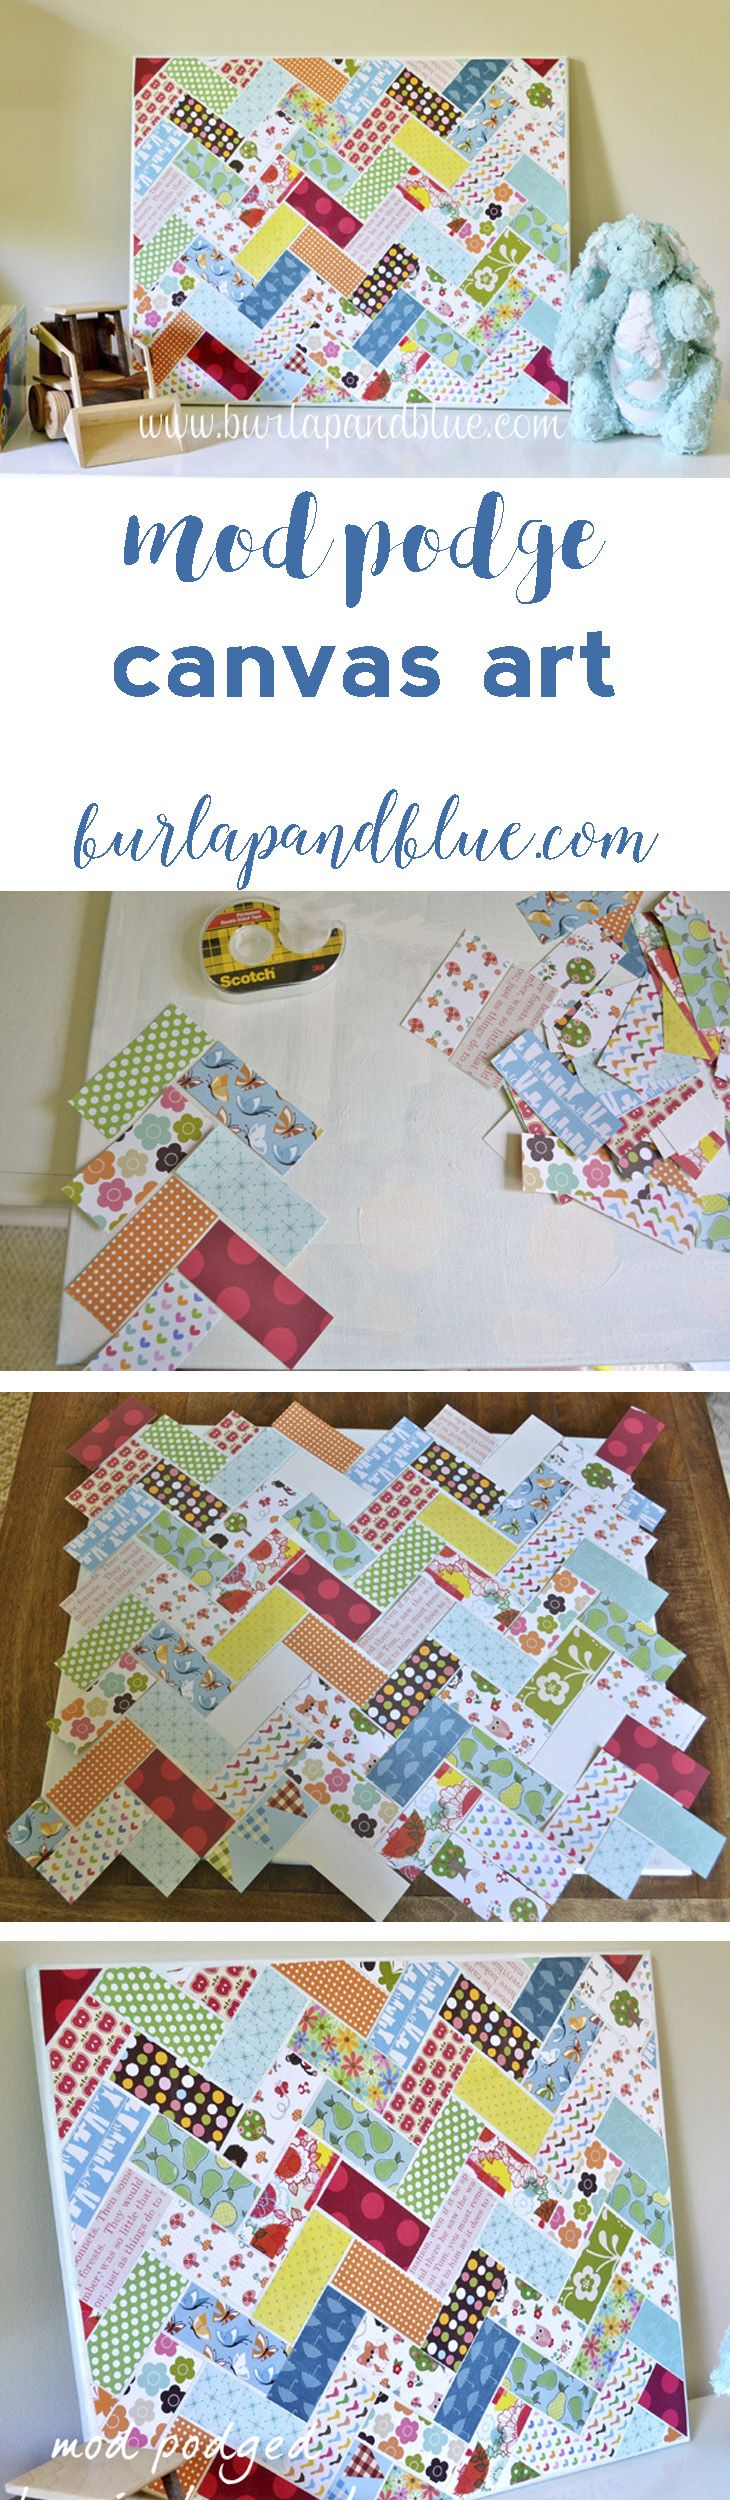 mod podge herringbone canvas wall art! great scrapbook paper project! fabric scraps